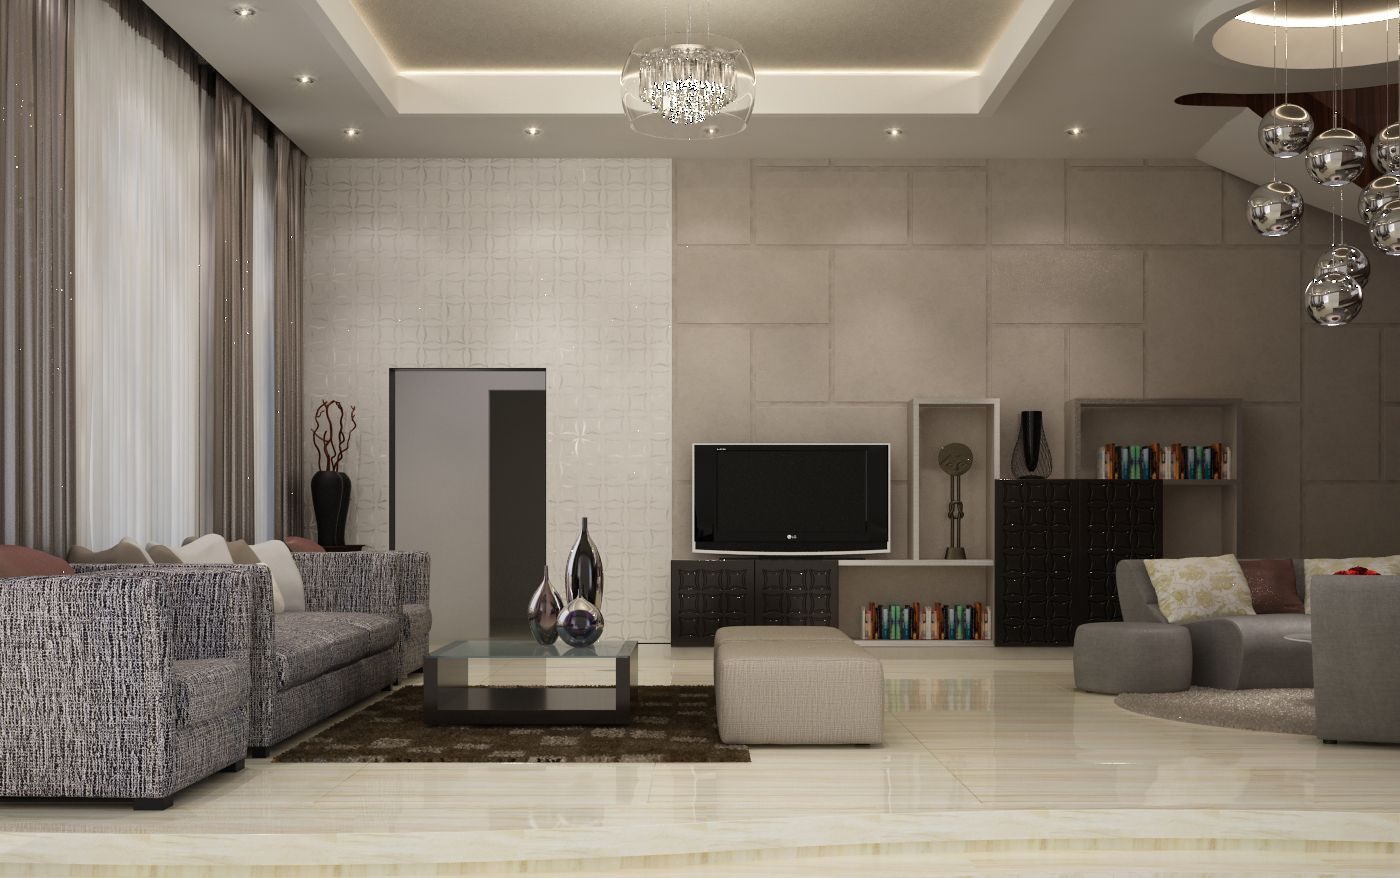 Living Room Furniture Mumbai there is a variety of interior design ideas for a living room in